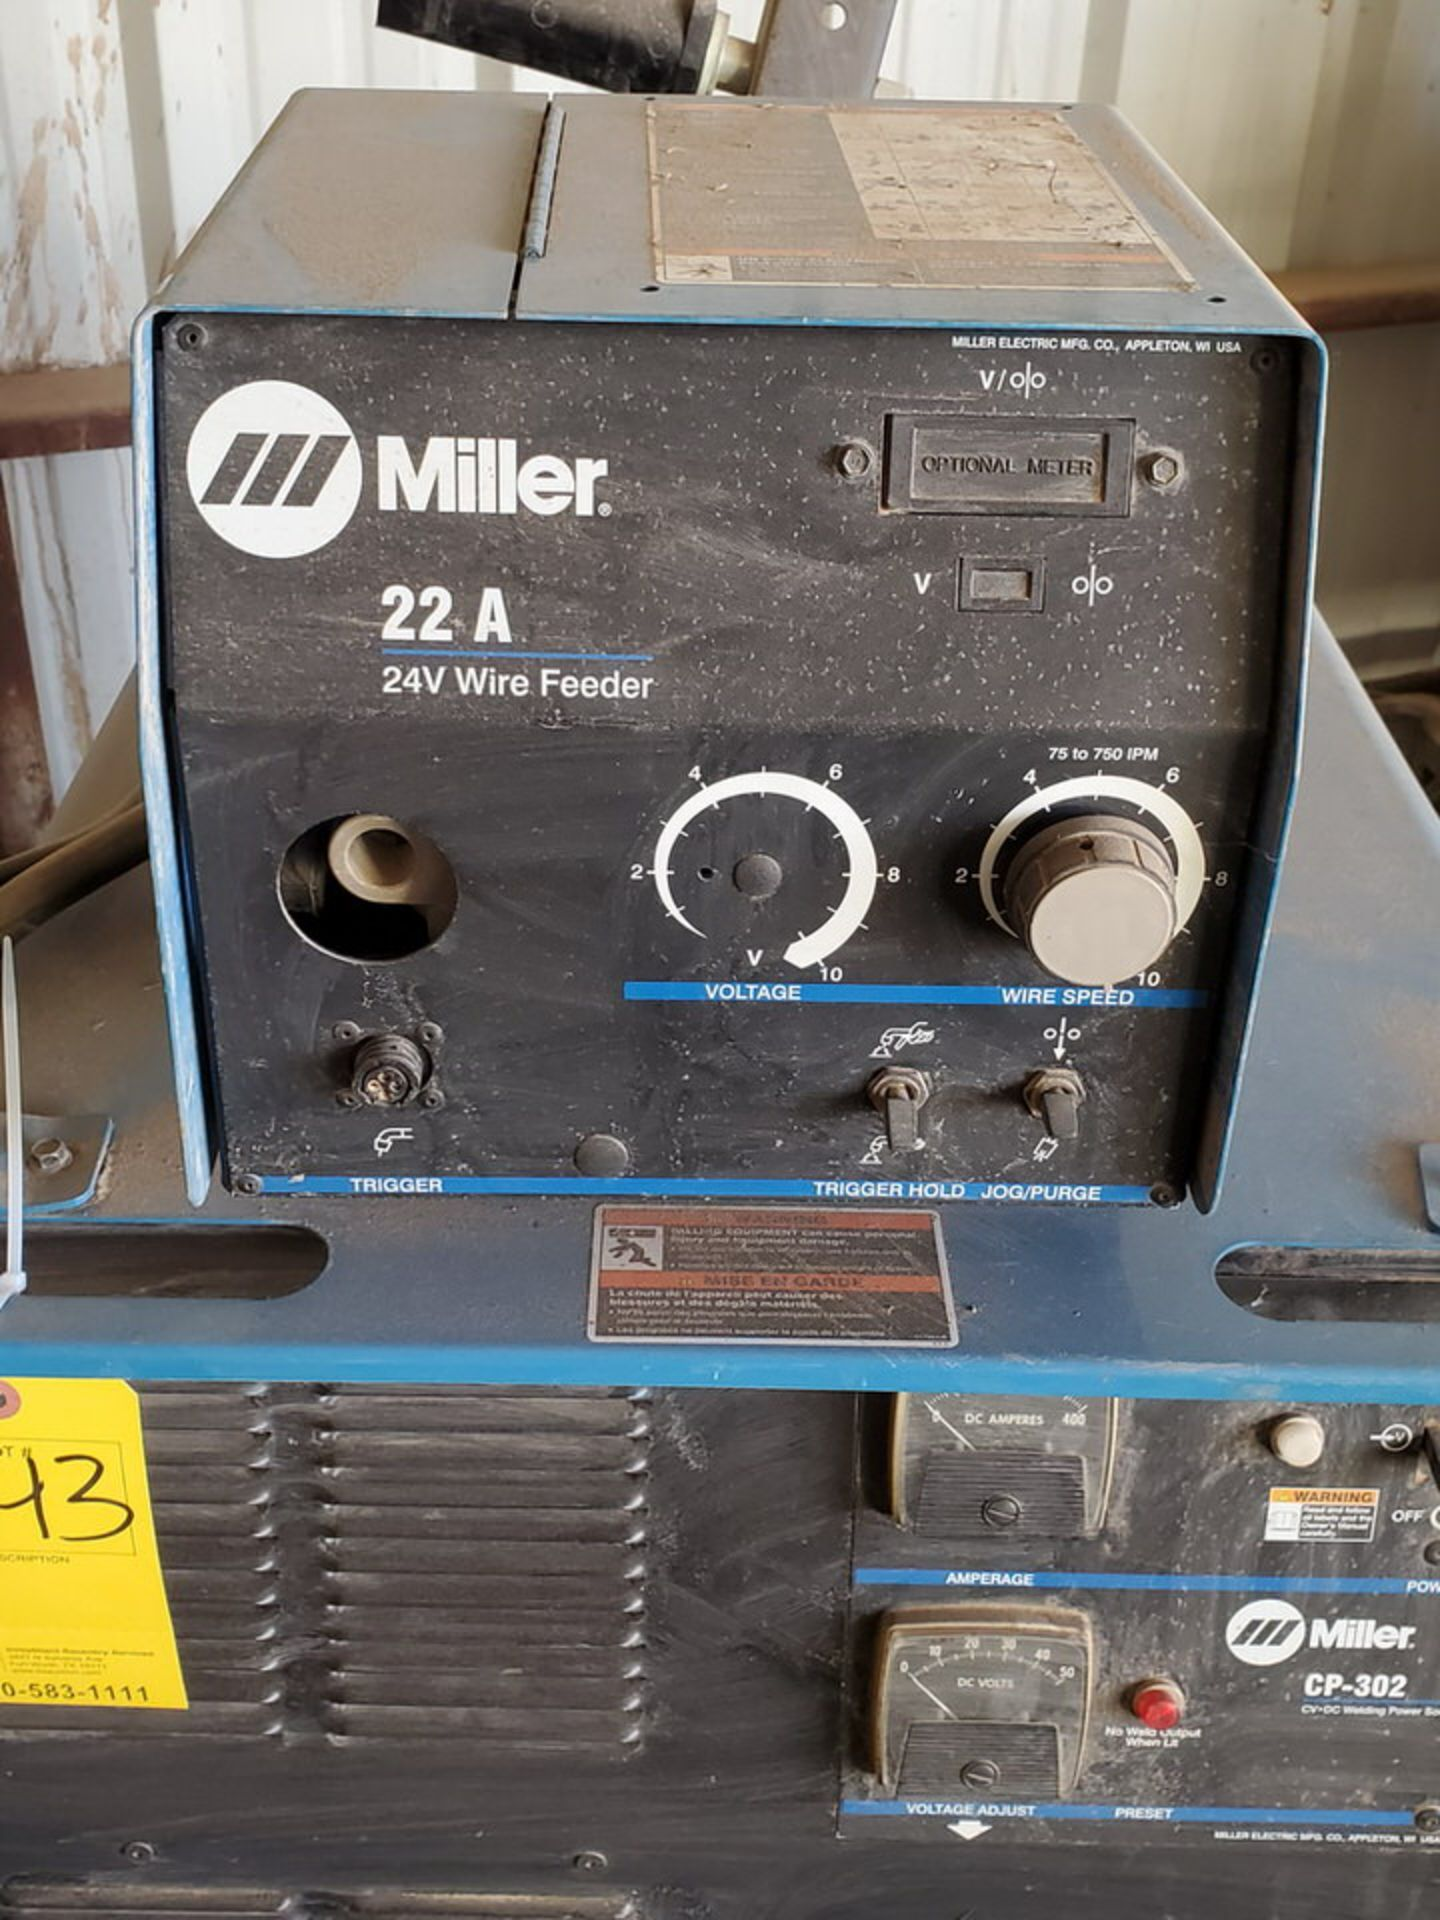 Miller CP-302 Multiprocessing Welder W/ S-22A CC/CV Wire Feeder - Image 4 of 5